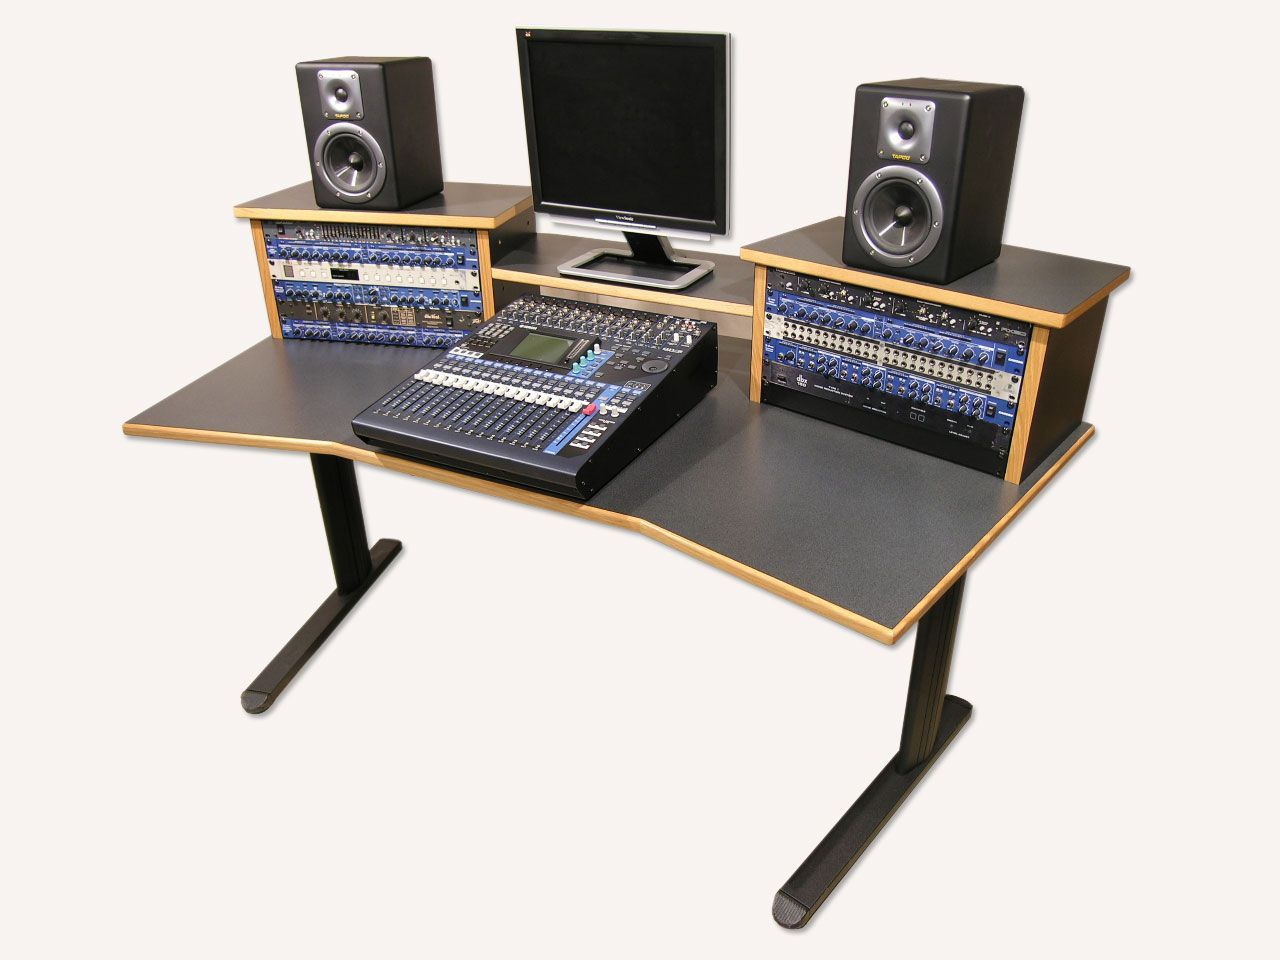 home studio desk design. Simple Wood Gray Studio Desk Design with Elegant Black Aluminum Legs for  Interior Furniture Ideas http votethru com how to recording studio desk speakers